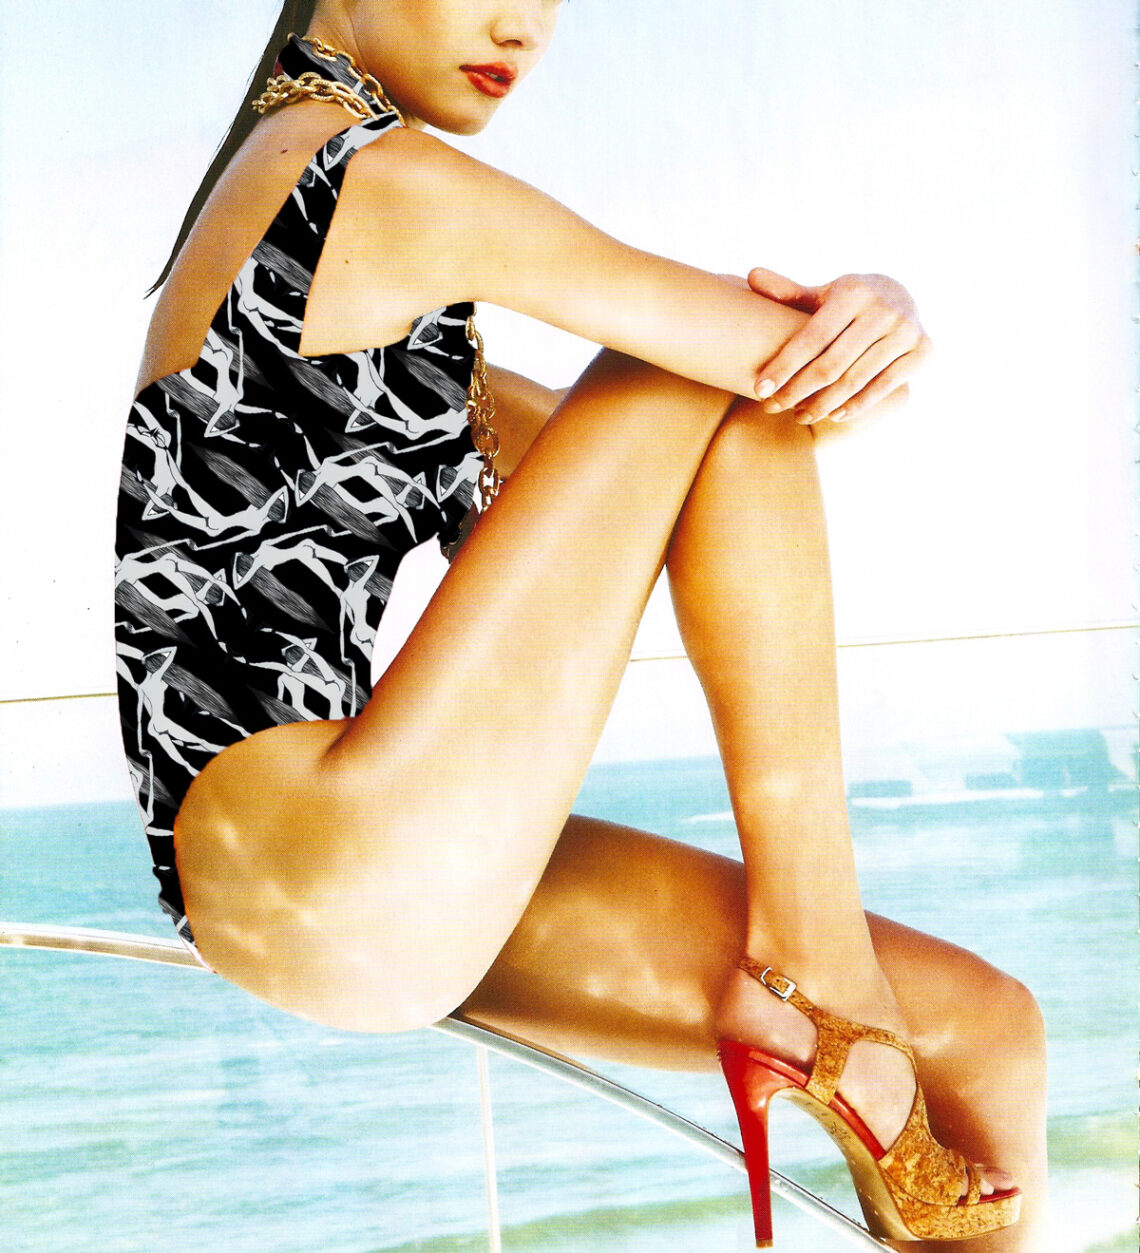 Fashion phtogography of giurl at the beach wearing an abstract printed swimming costume